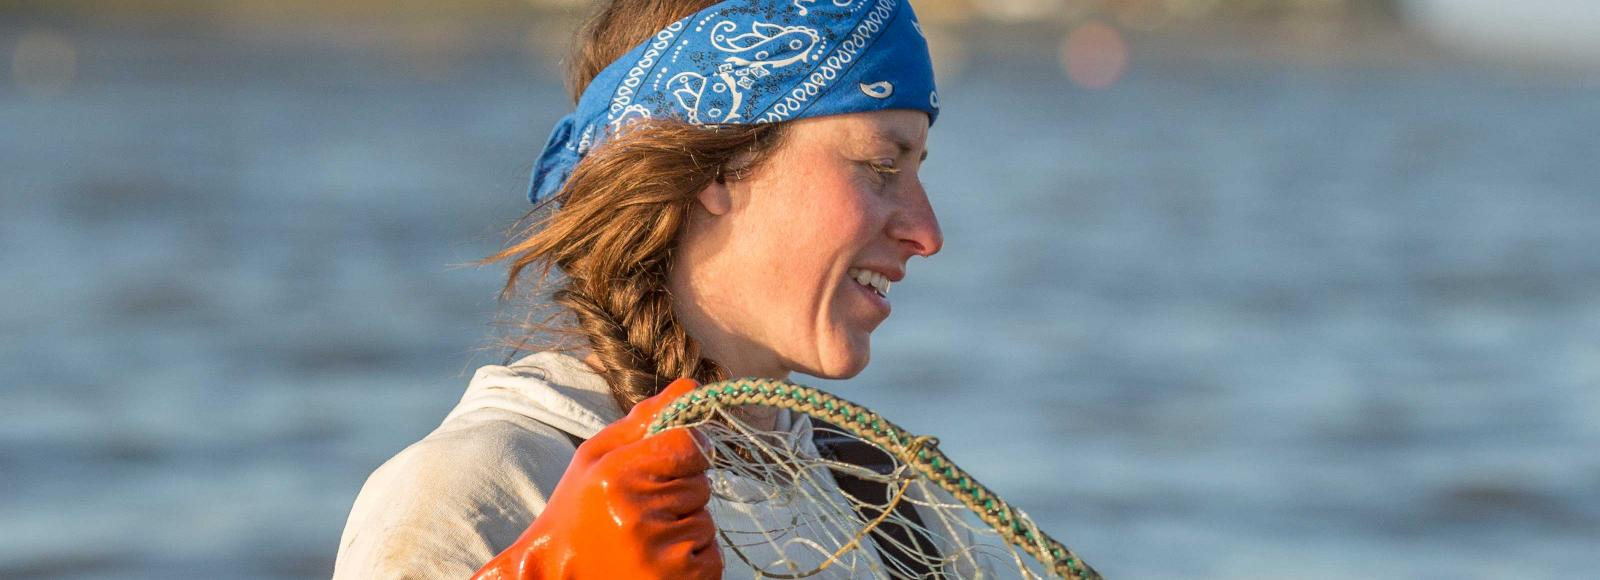 A close-up of a powerful female salmon fisherman pulling in a net.